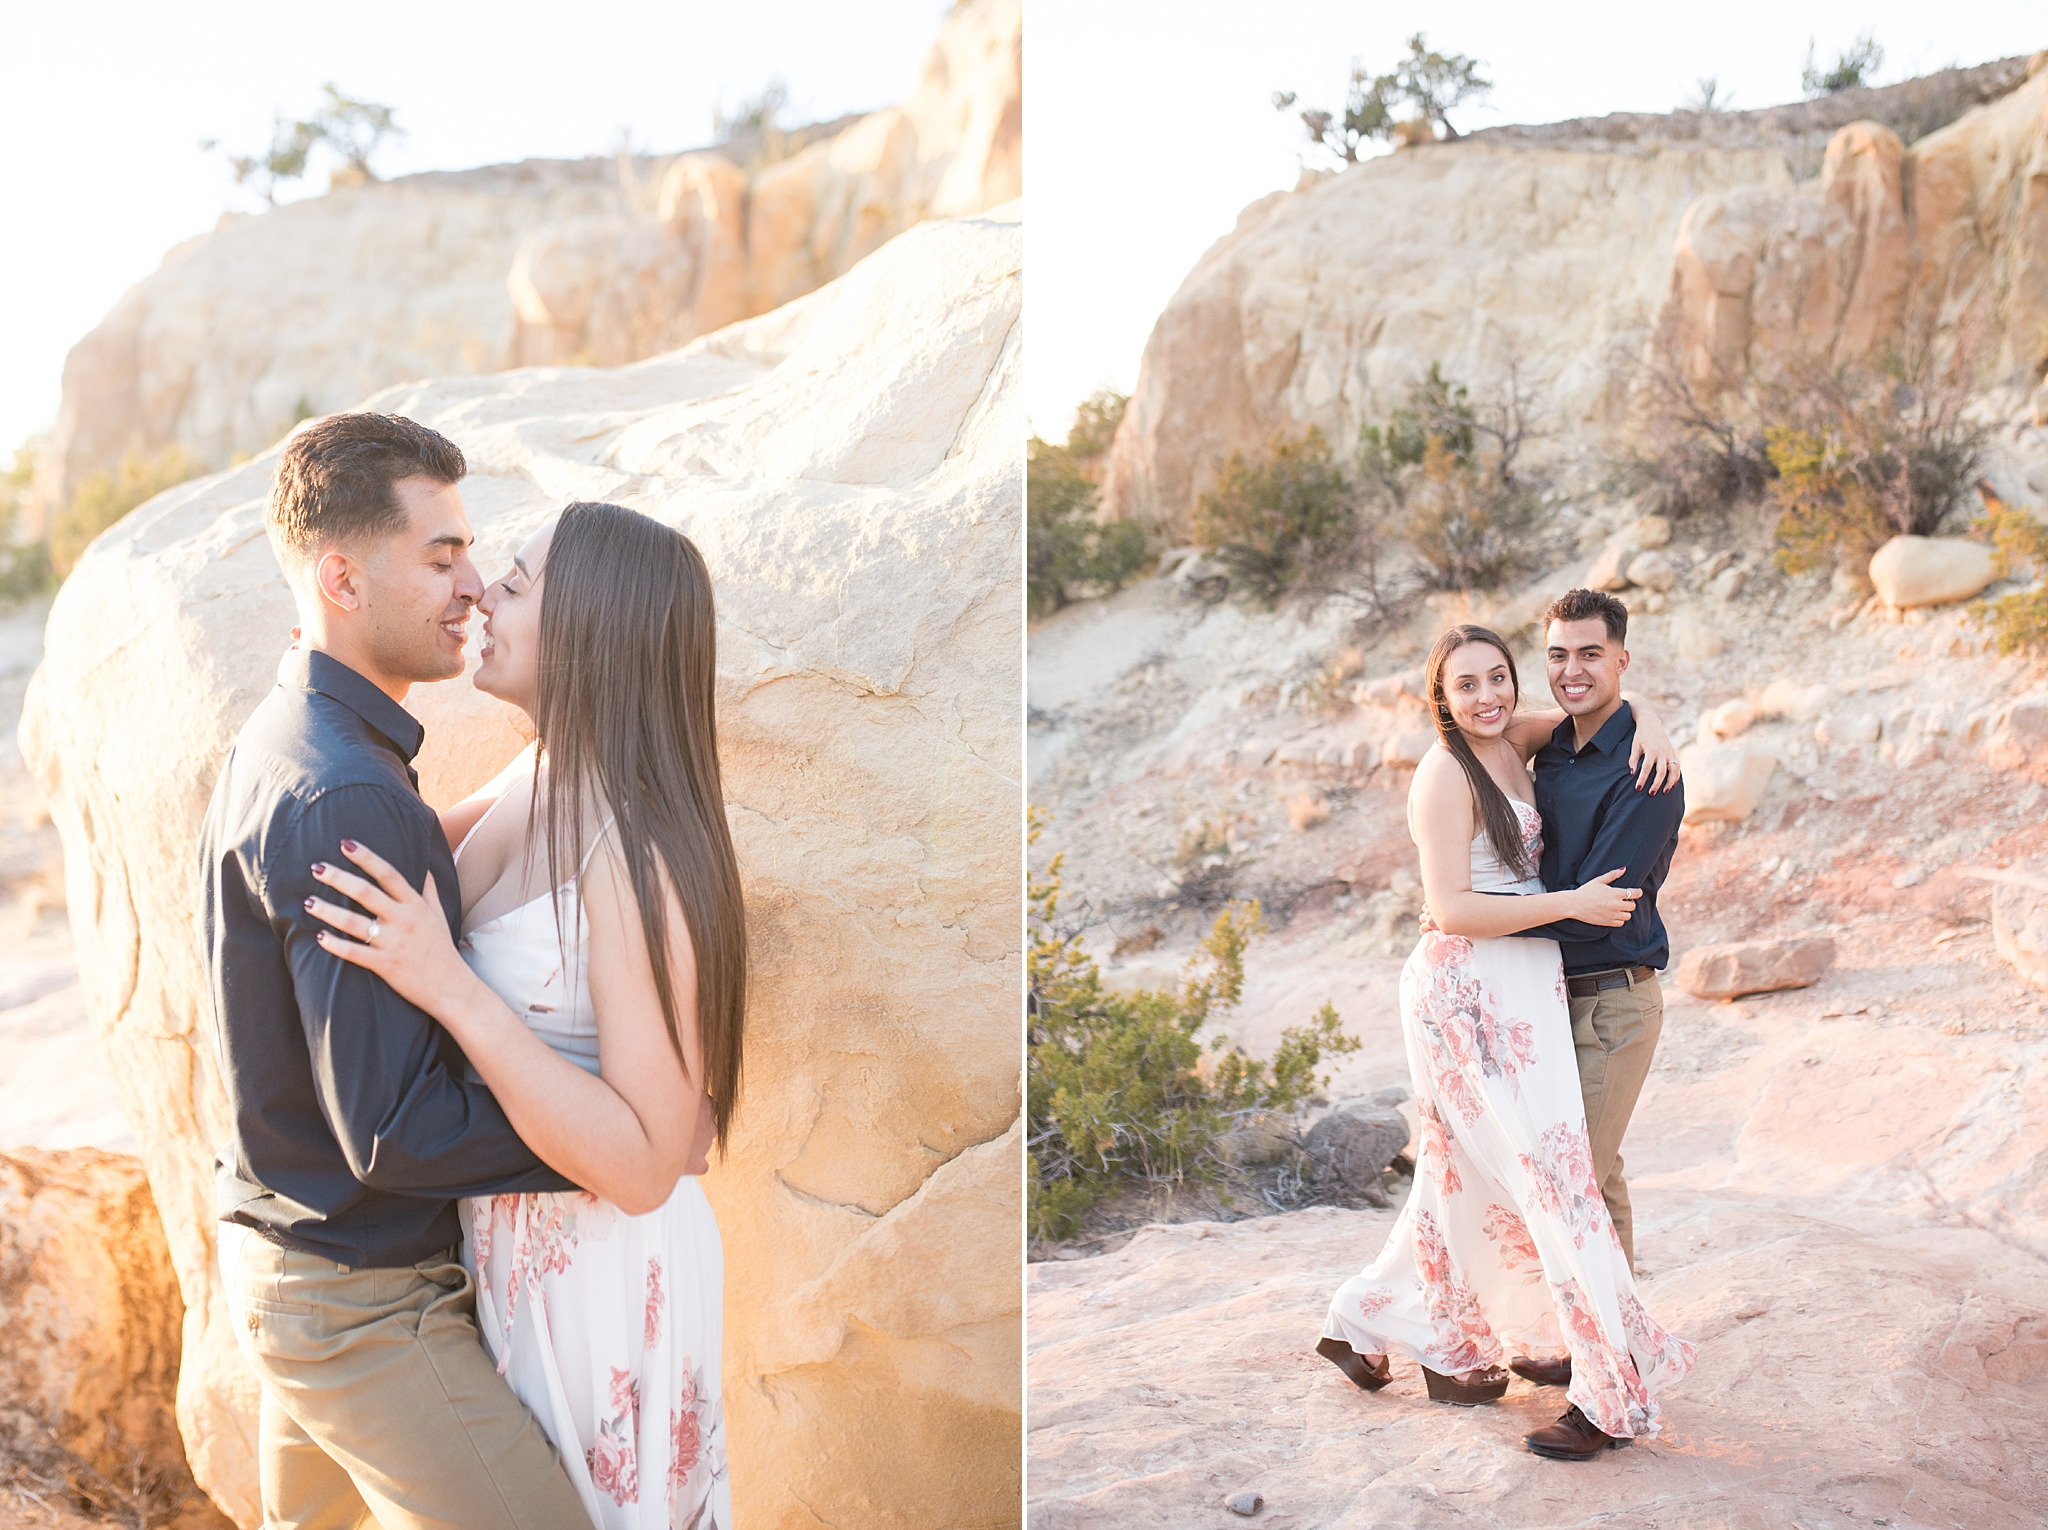 bosque brewery engagement session placitas mountains foothills albuquerque wedding photography new mexico wedding photographer kayla kitts photography_0023.jpg